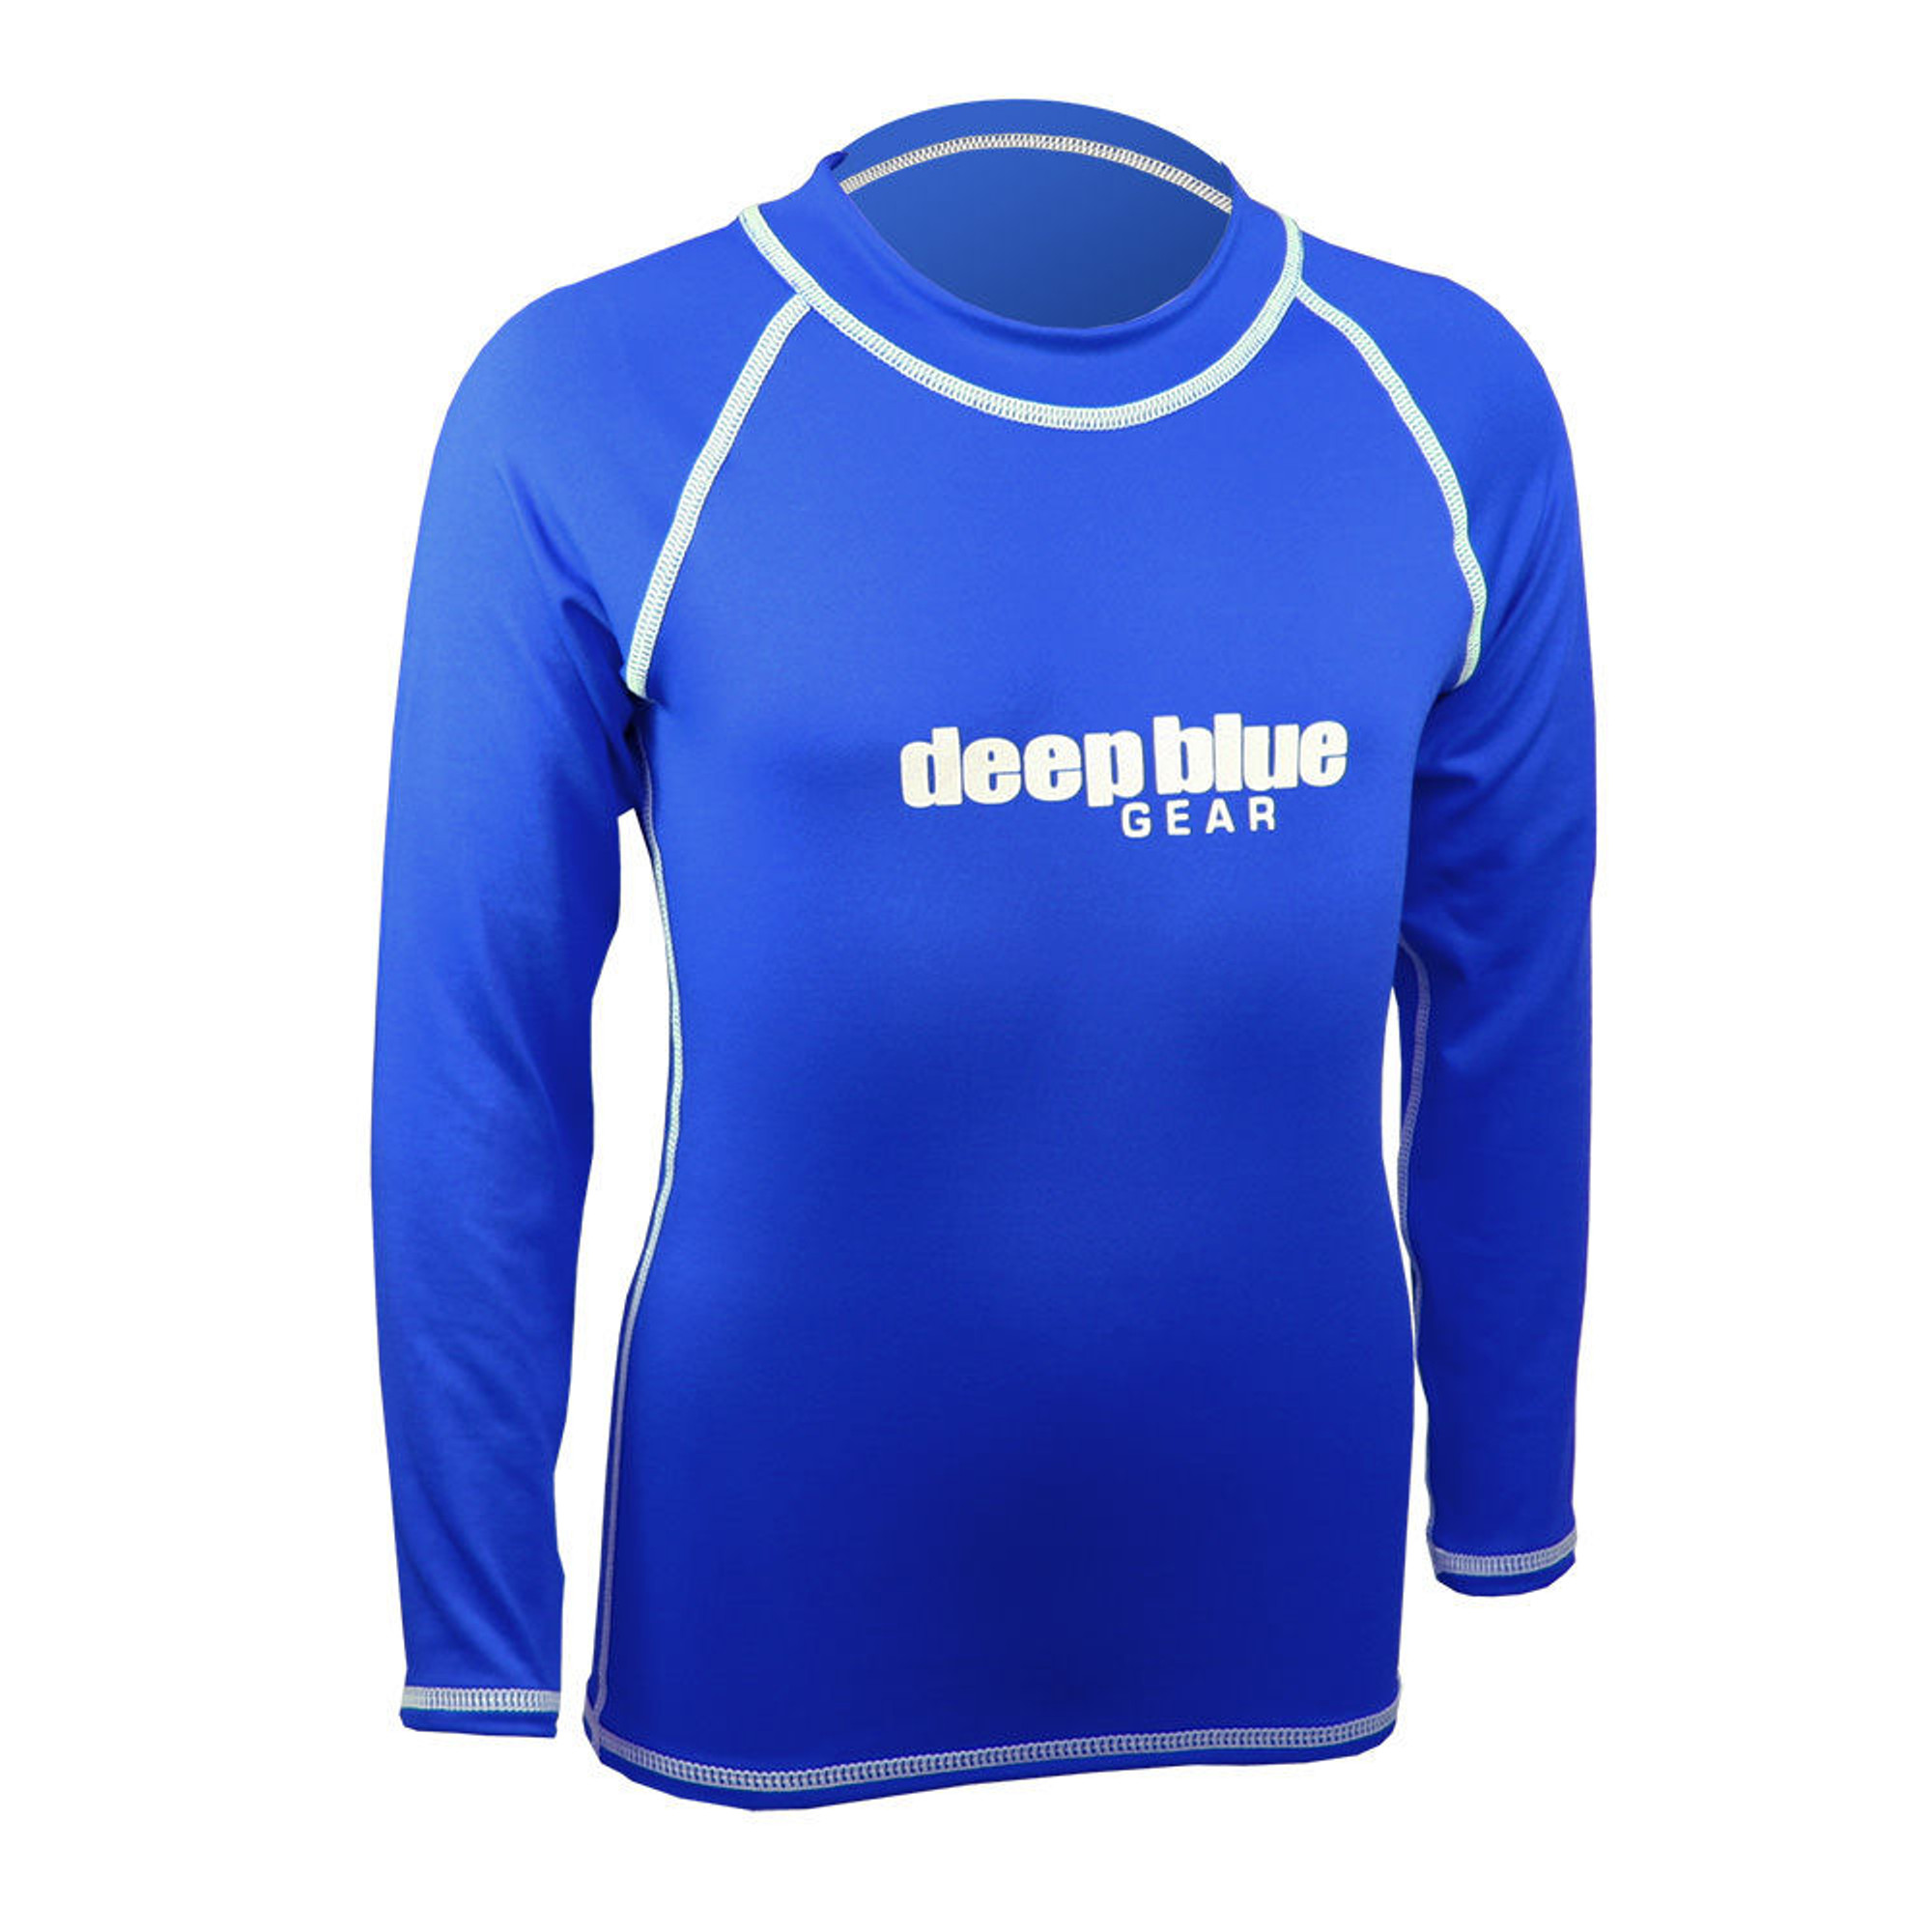 Kids Long Sleeve Rashguard